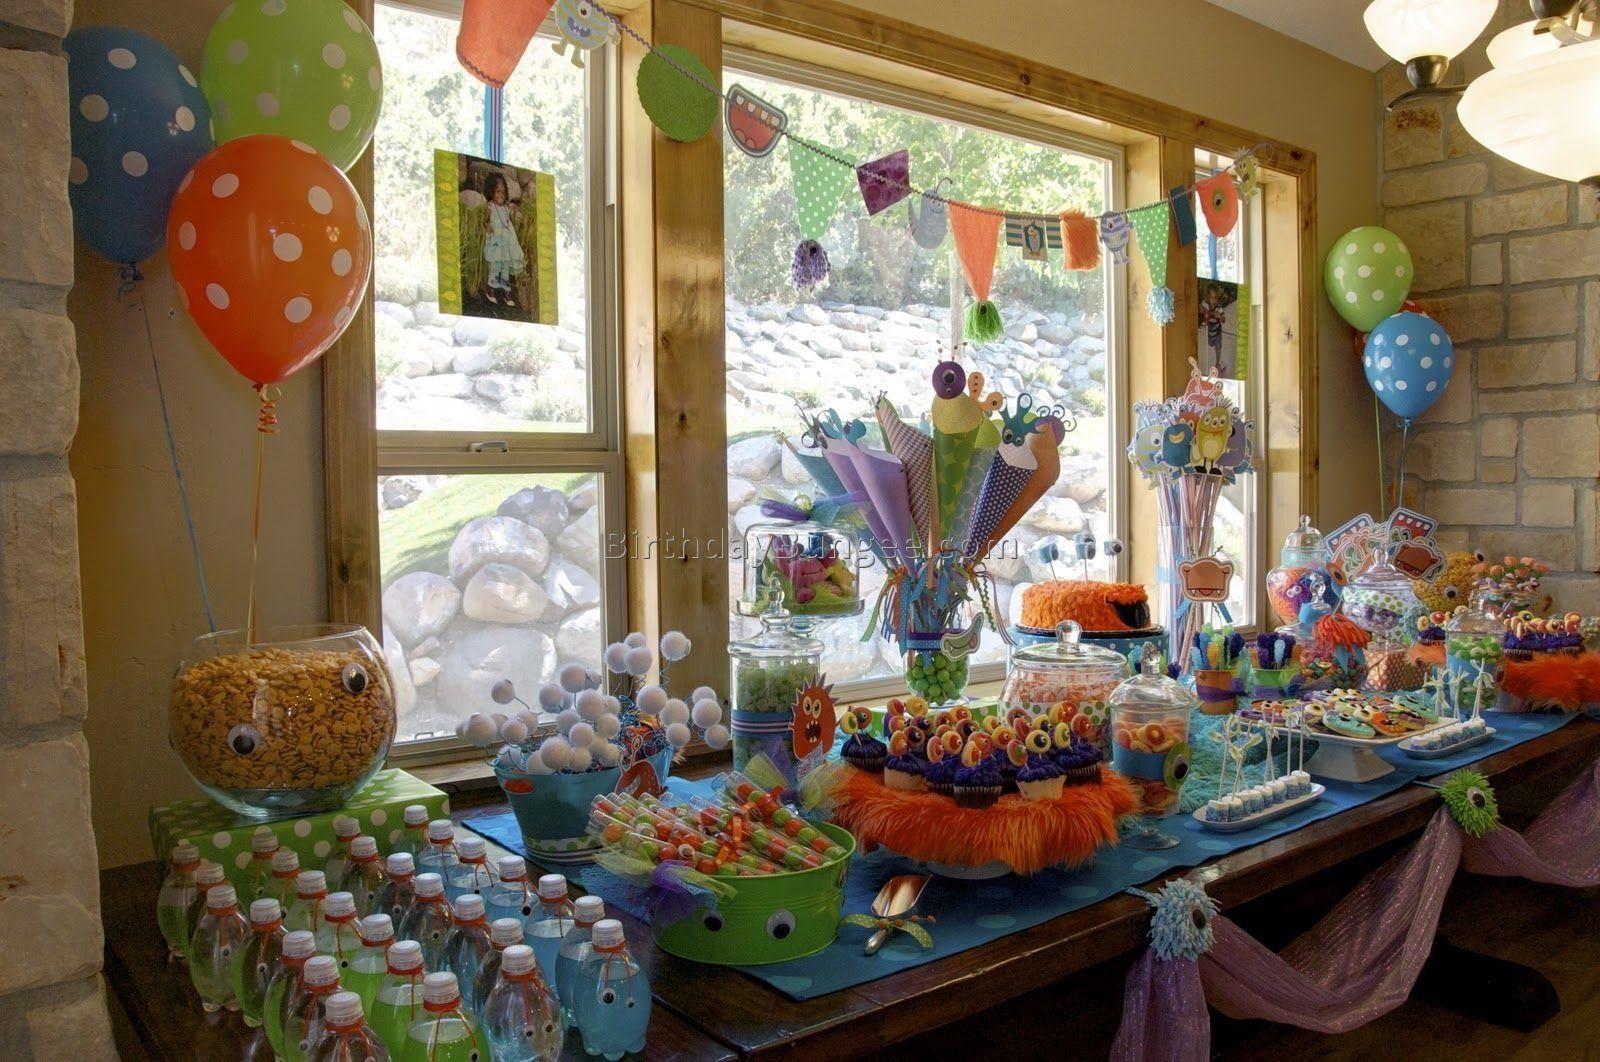 10 Fabulous 6 Year Old Birthday Ideas themes birthday 6 year old boy birthday party ideas at home in best